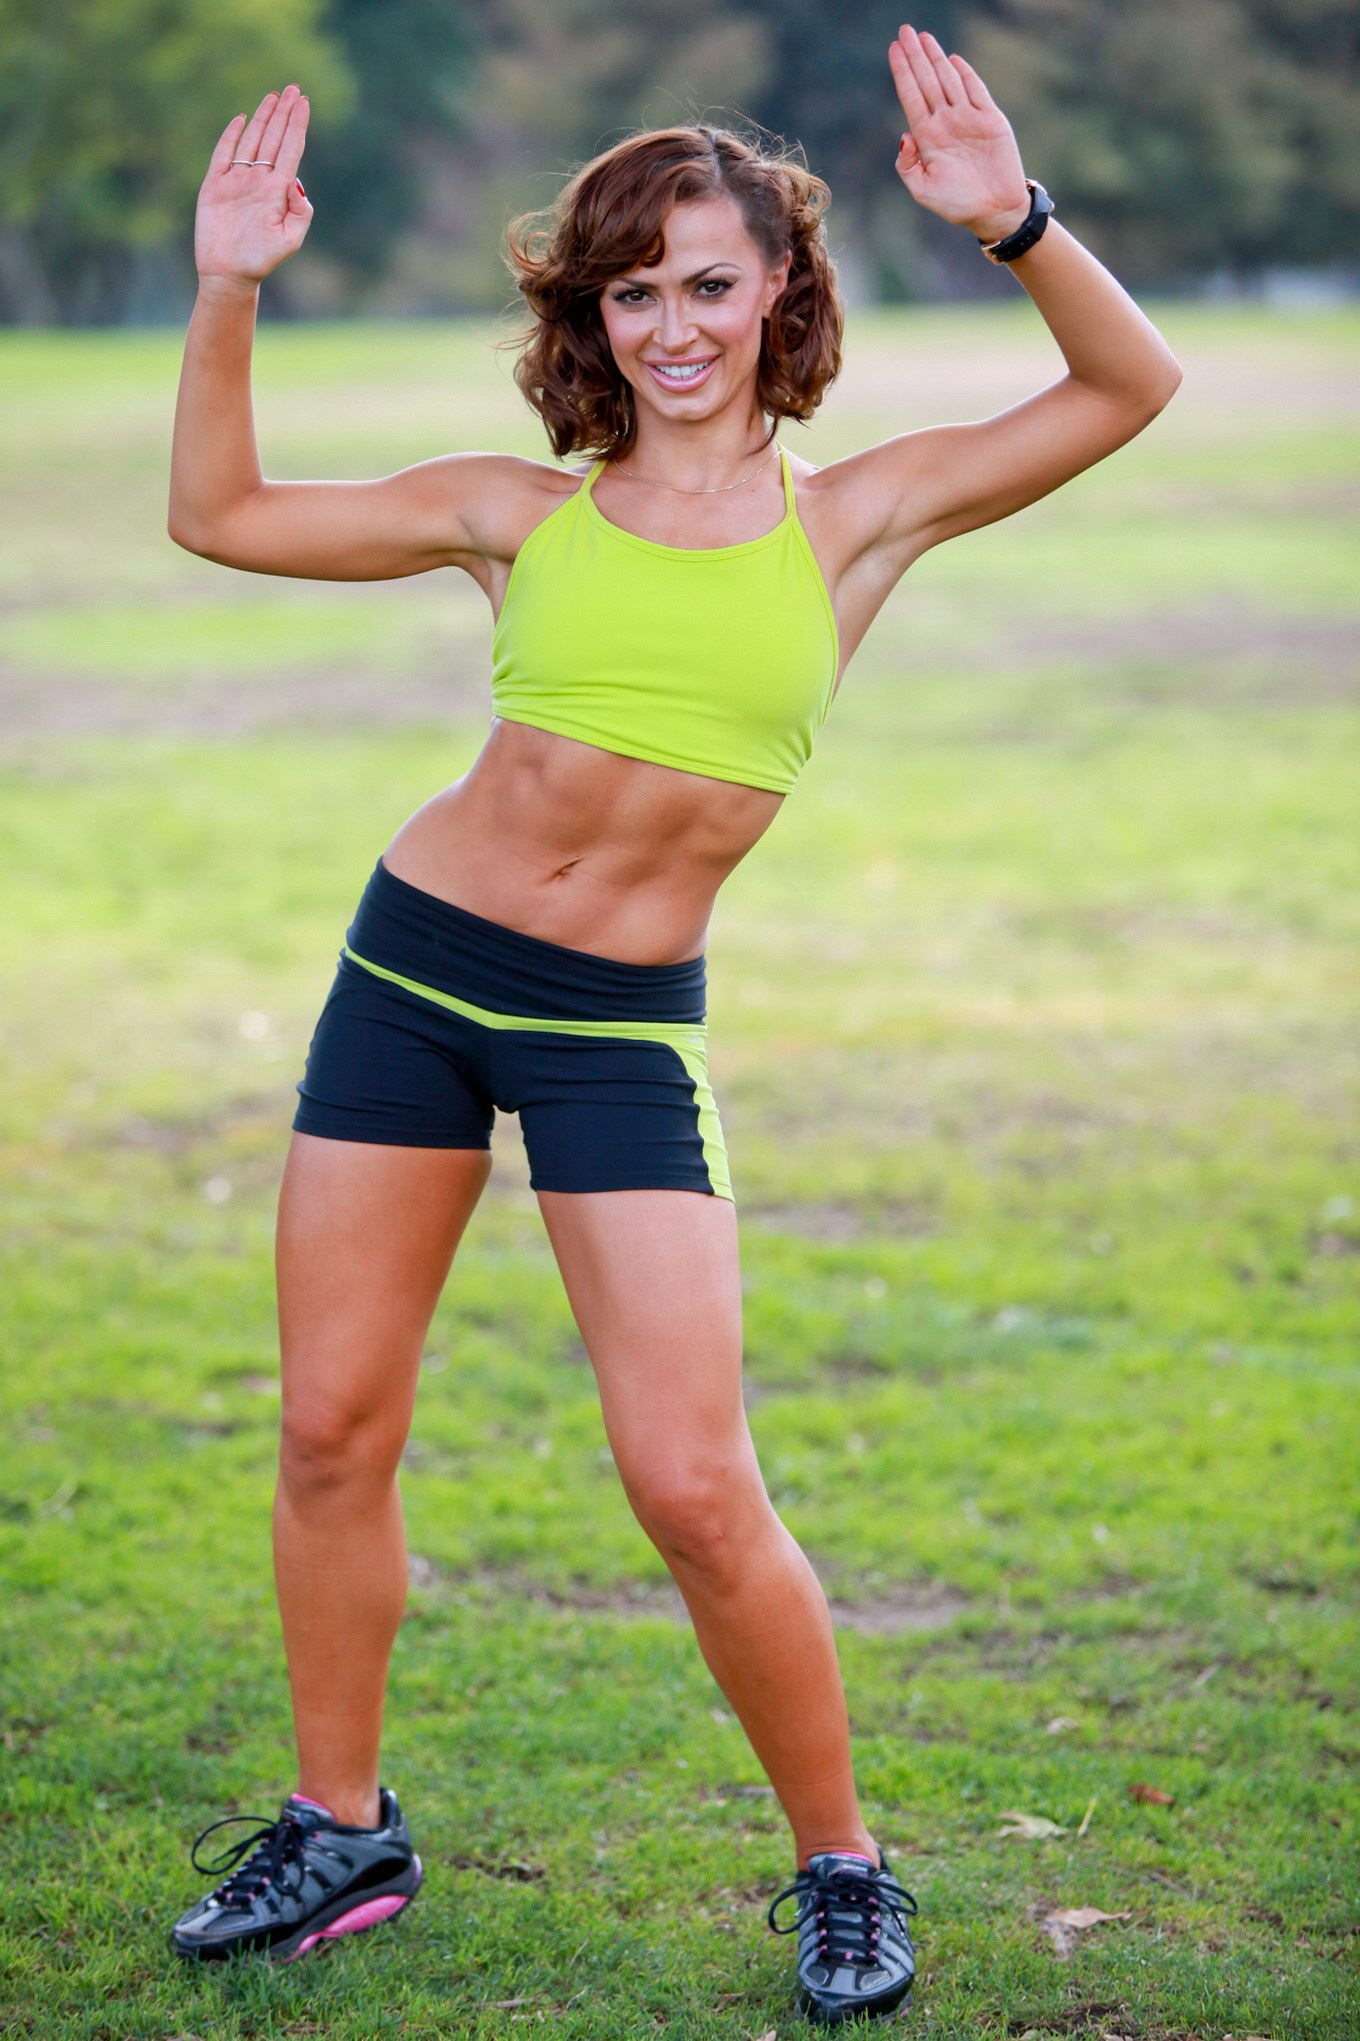 Karina Smirnoff showing off her perfect abs in a workout photoshoot: www.celeb-for-free.com/pics/celeb1916/index.html